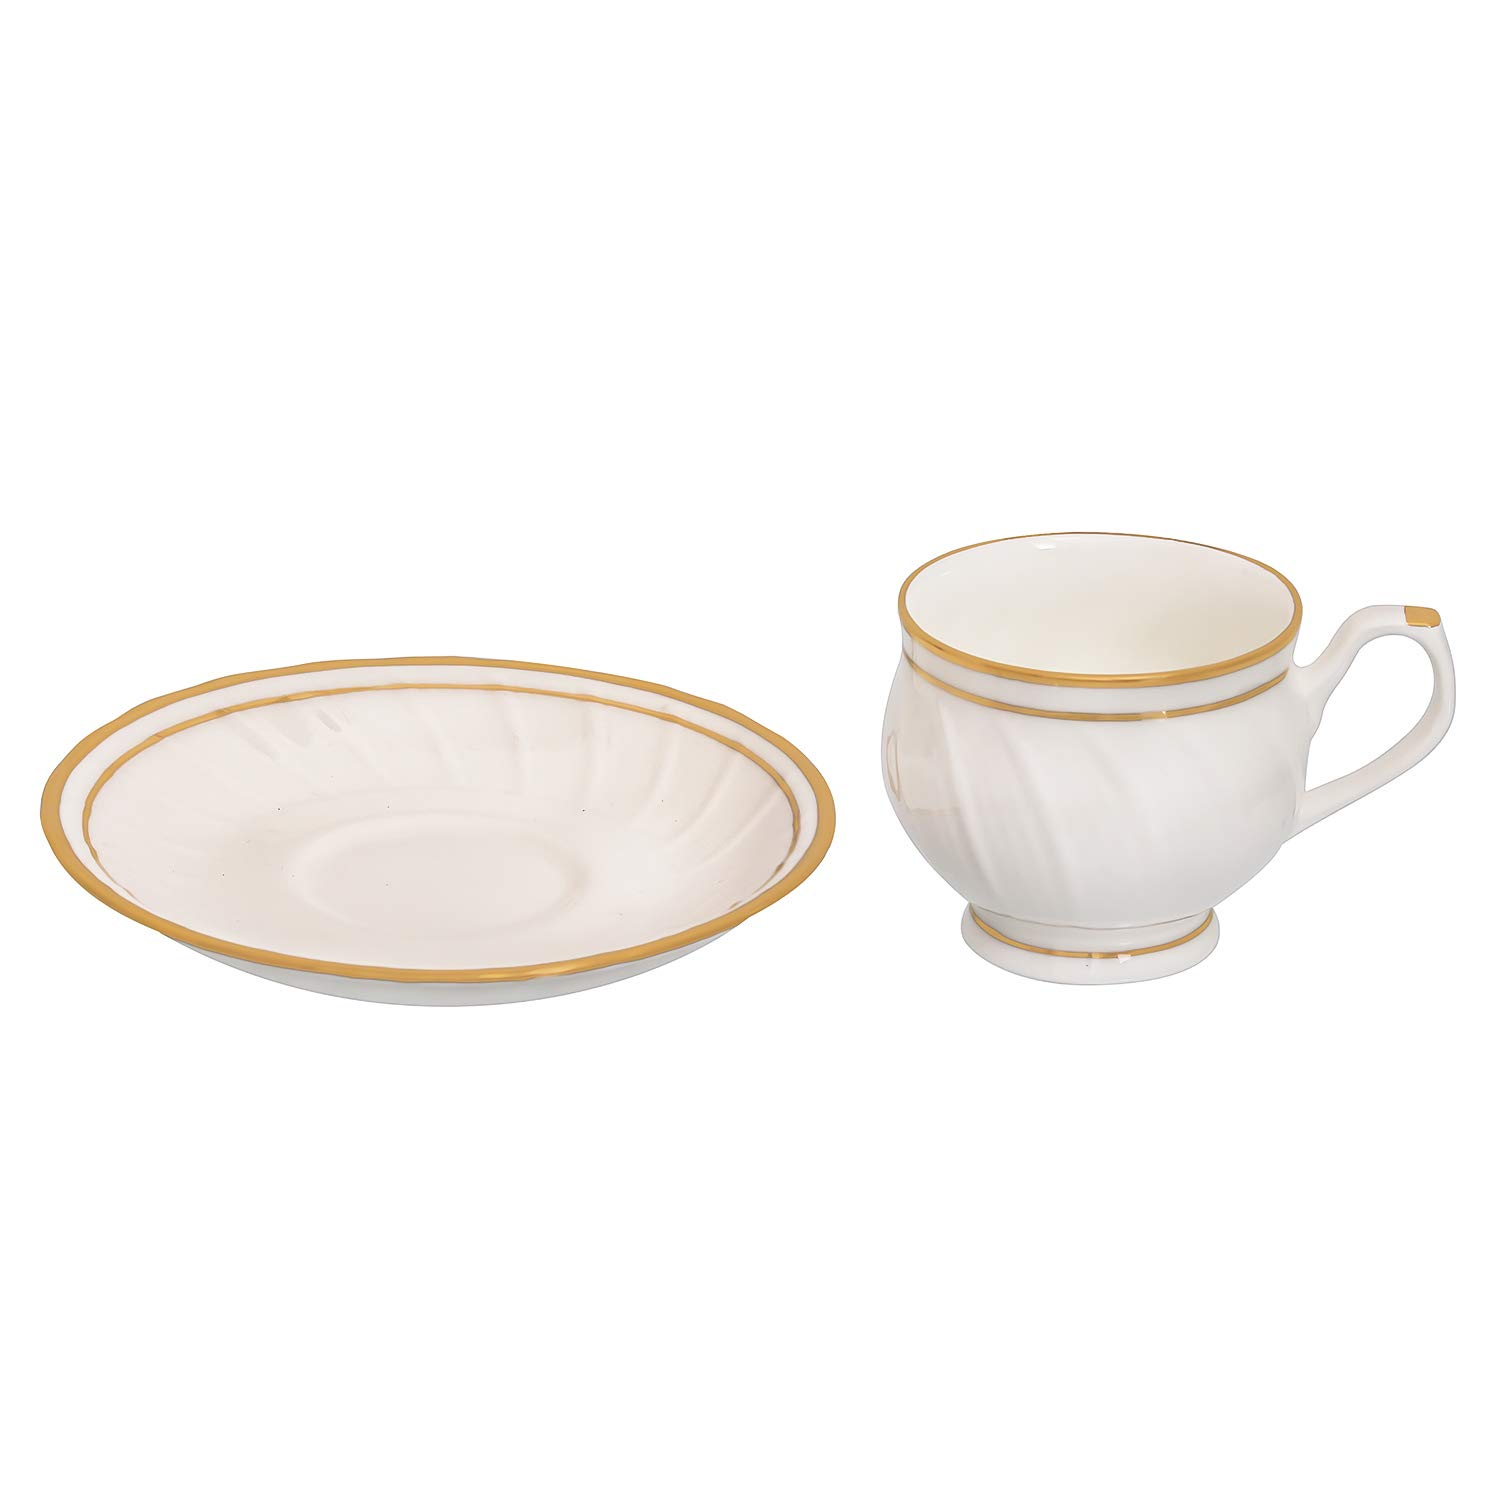 Bone China Karin Gold Line Cups & Saucers, 200 ml